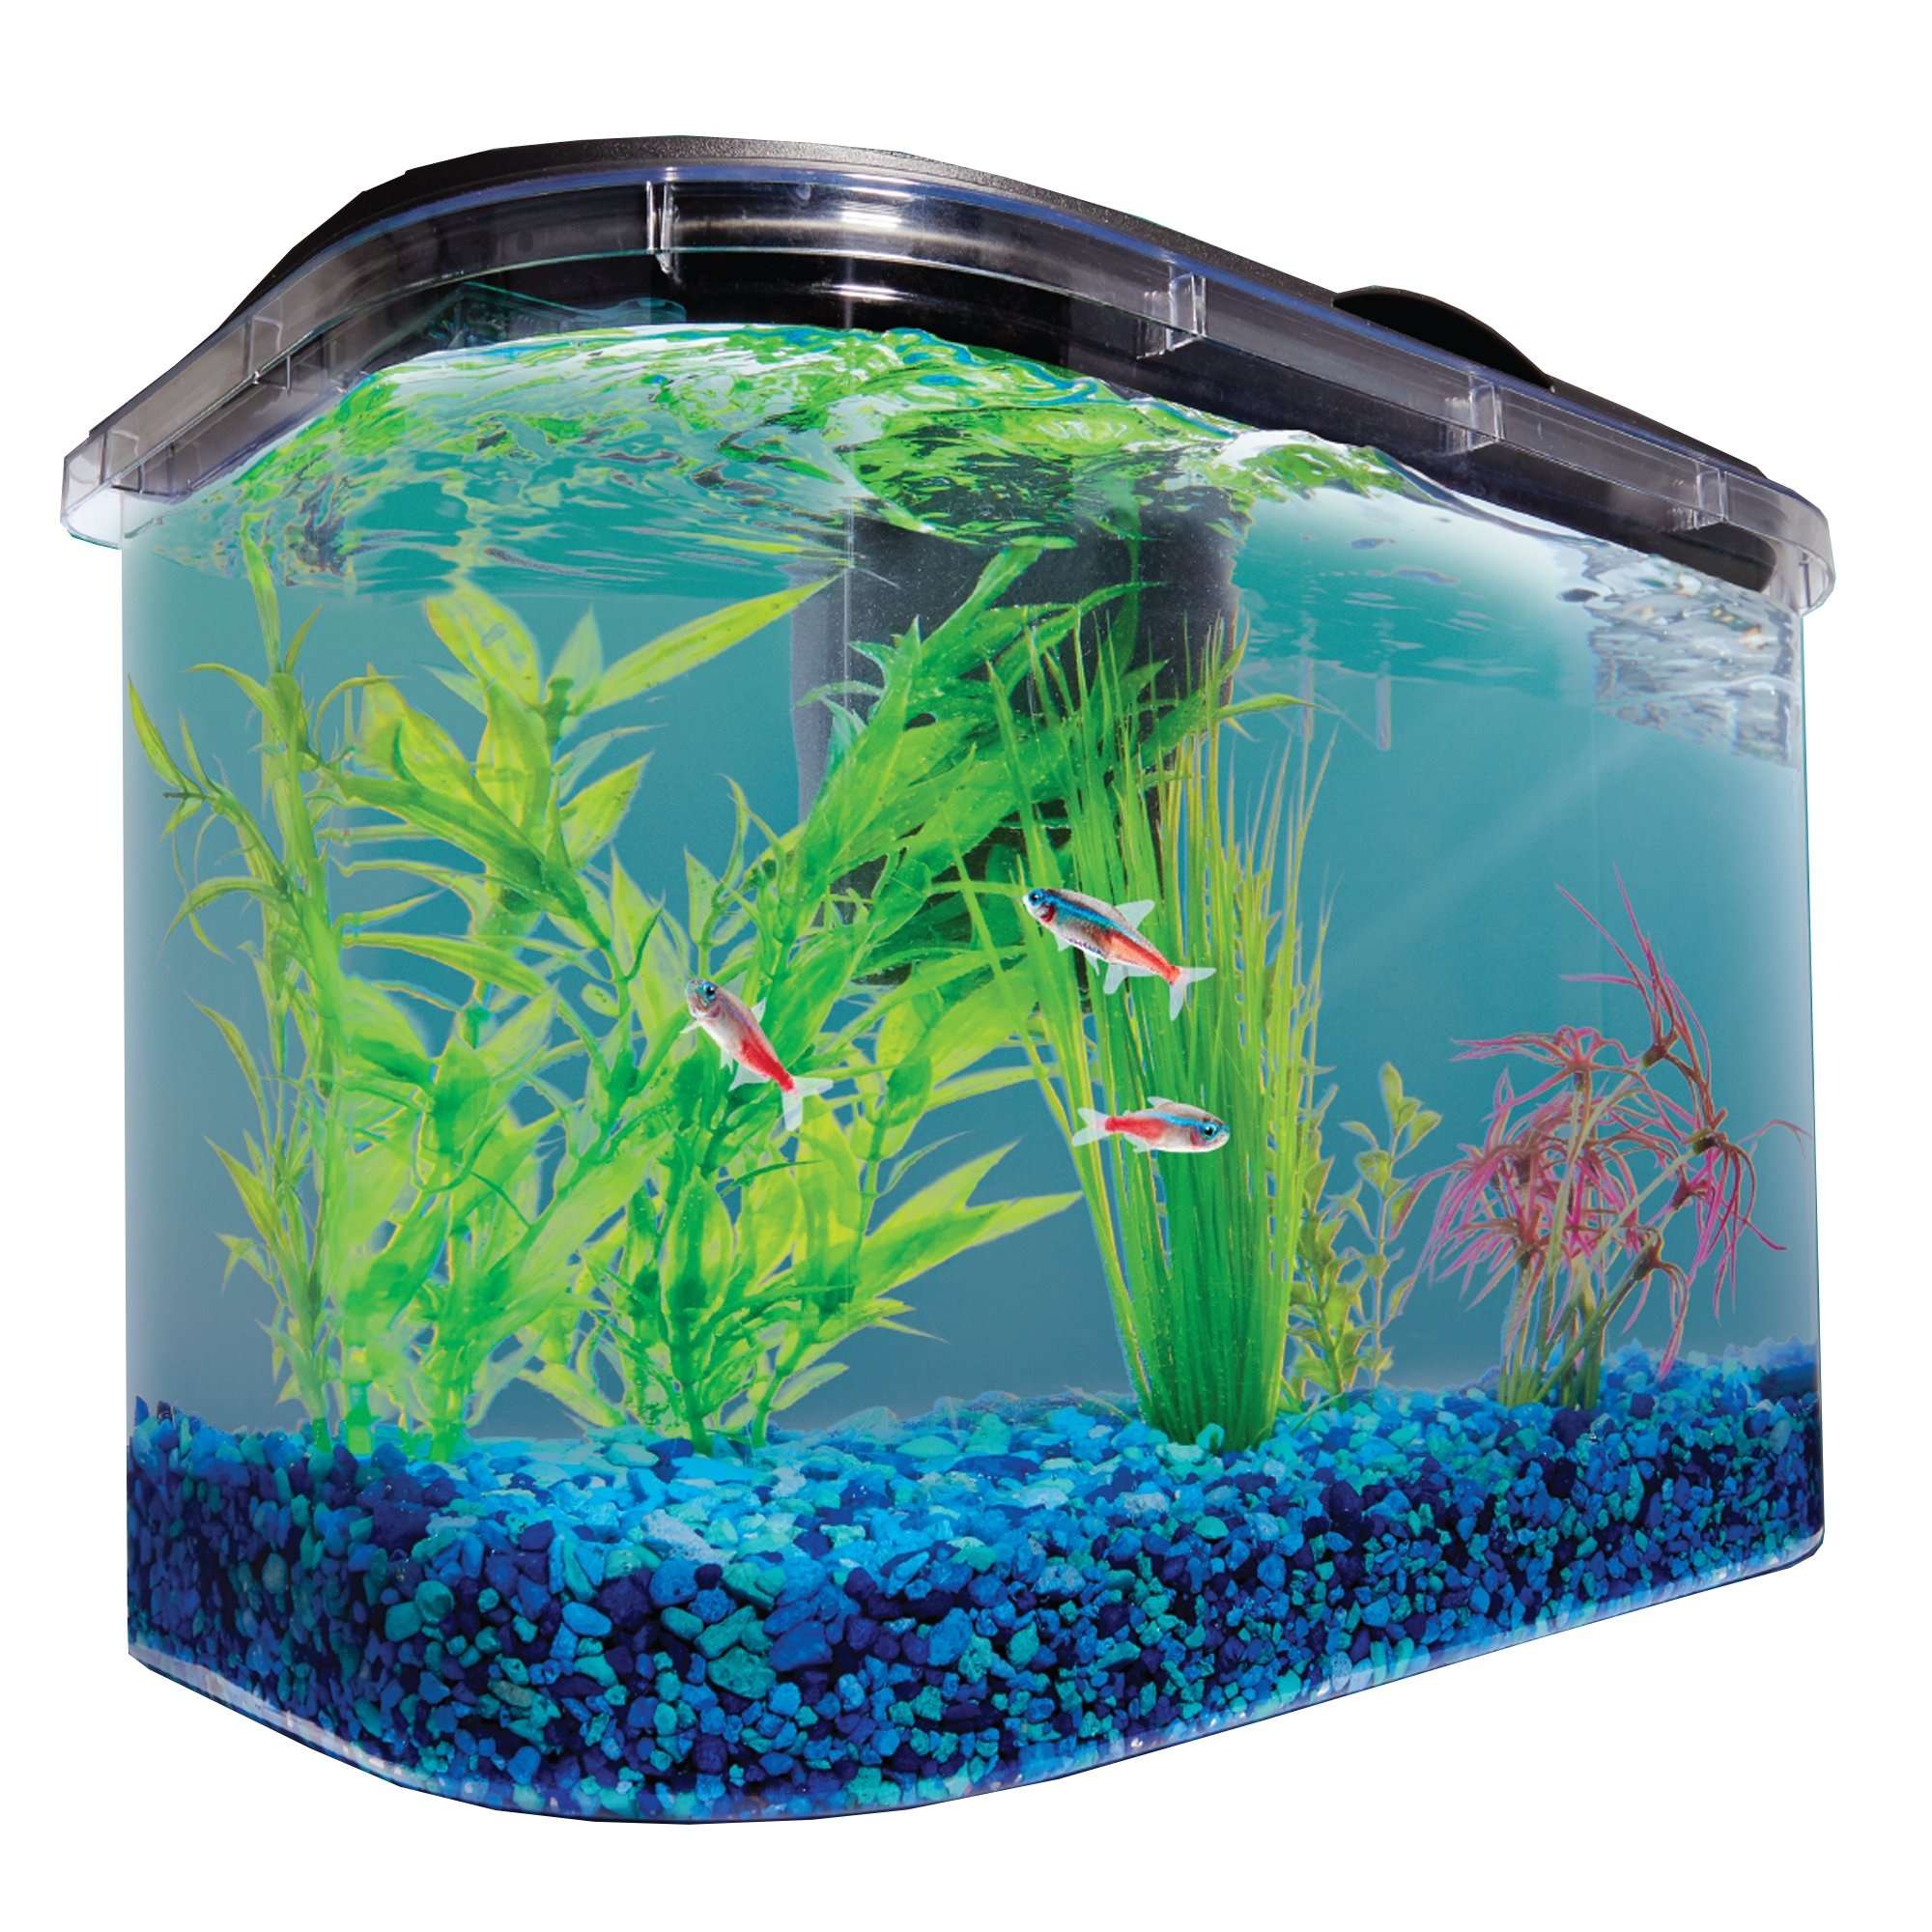 Used aquarium fish tank for sale - Imagitarium Freshwater Aquarium